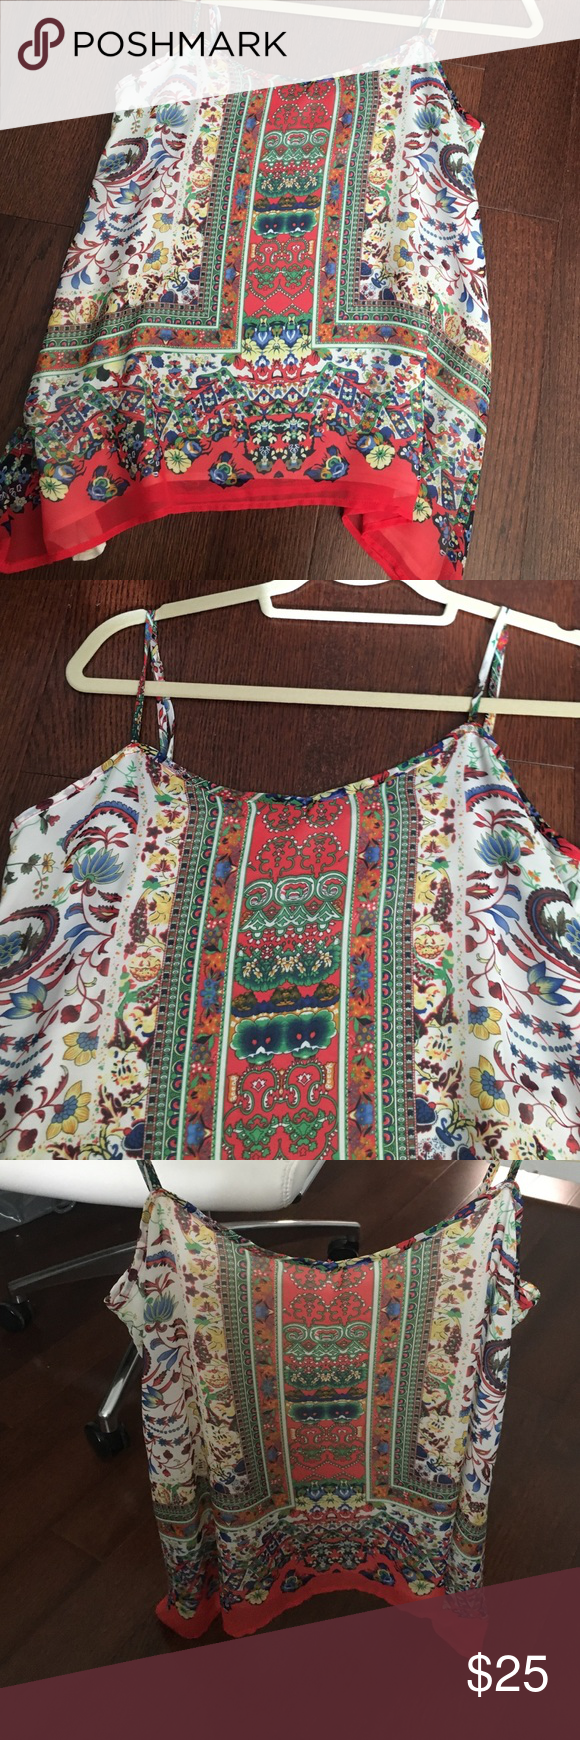 Pattern Shirt Colorful floral pattern silk shirt! Great for work or fun! Rarely worn!! Tops Blouses